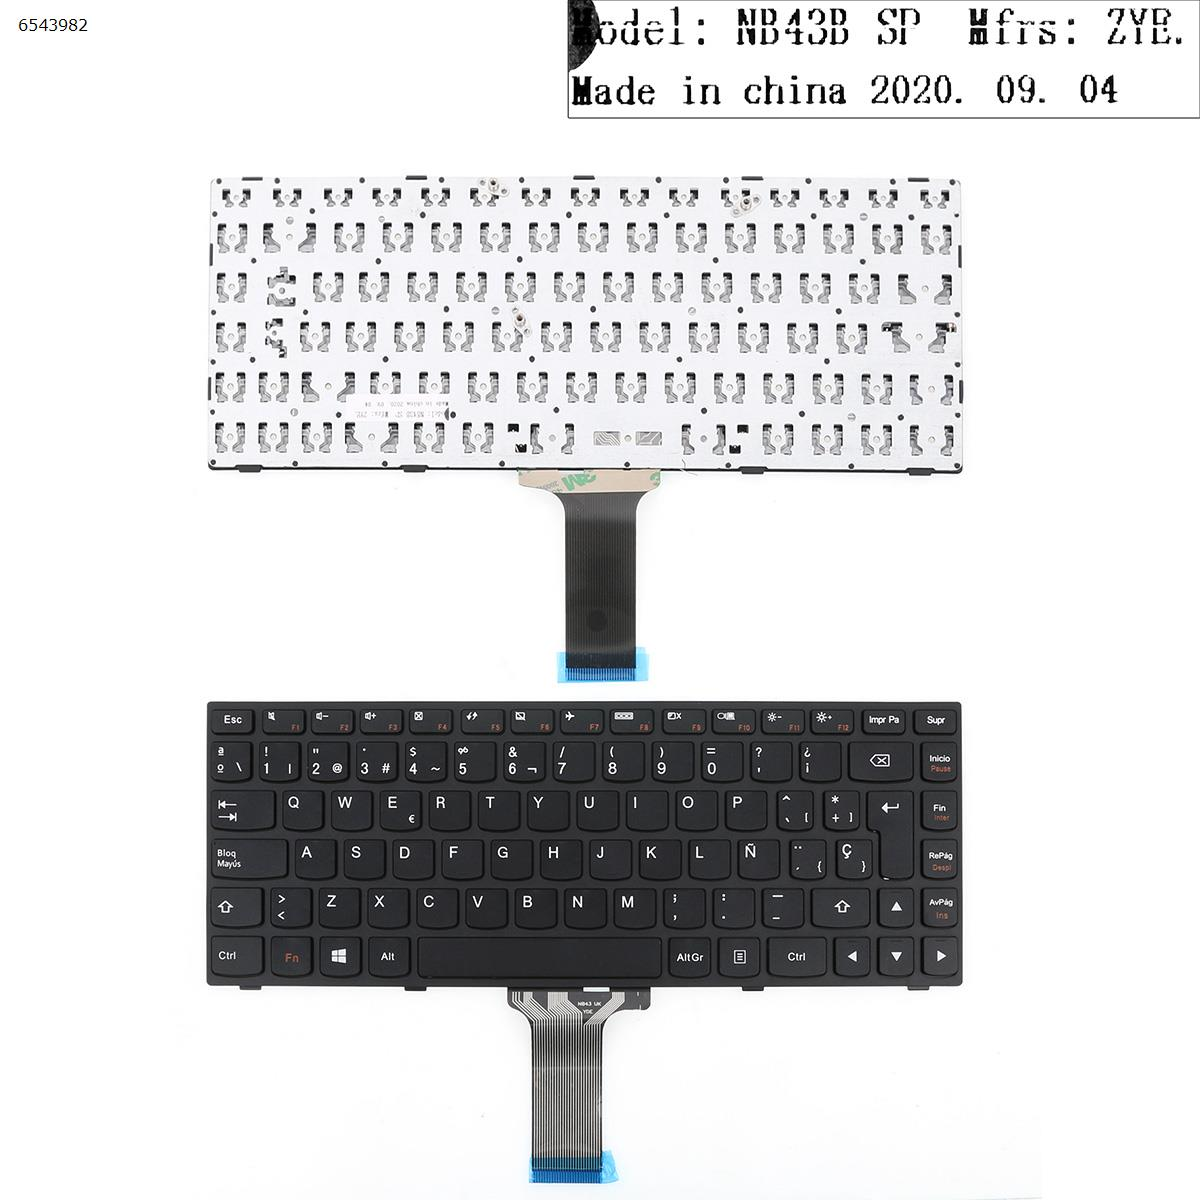 SP Spanish New Replacement Keyboard for Lenovo flex 2 14 flex 2 14d Laptop Black spanish laptop keyboard for lenovo b570 b590 z565 z560 z570 z575 v570a v570g b575 sp keyboard v570